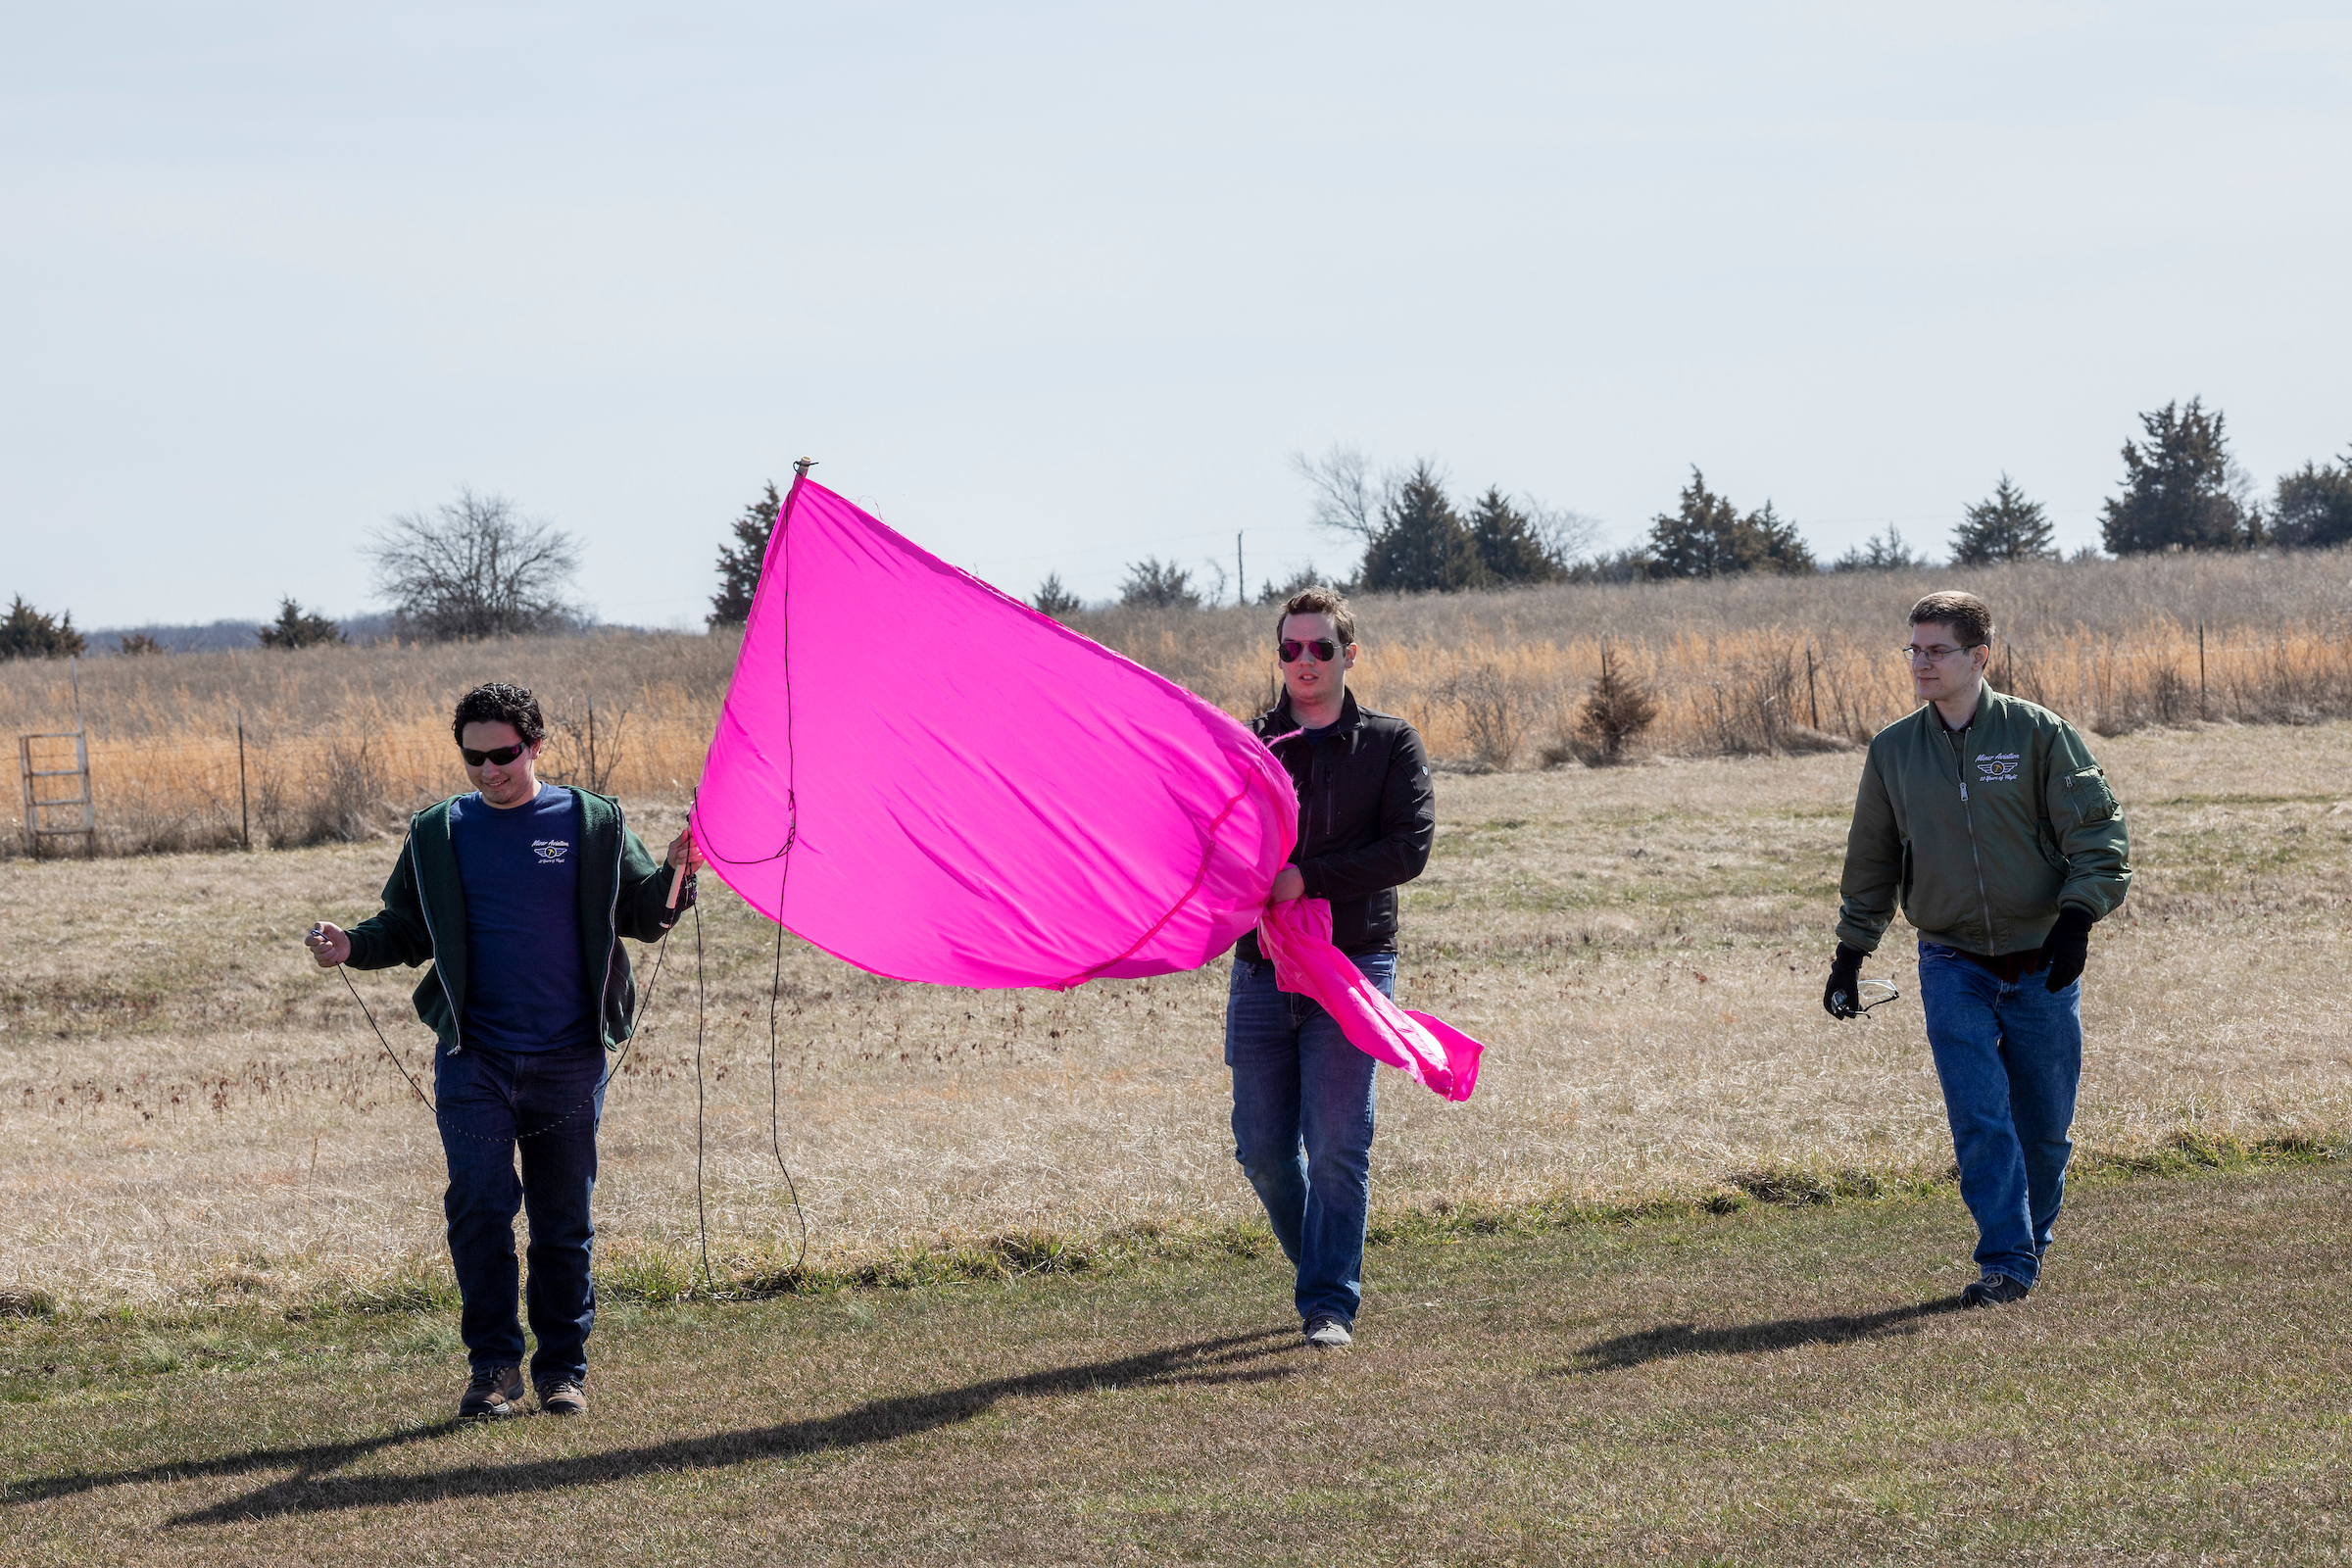 Photo Tom Wagner/Missouri S&T, Miner Aviation design team flight test at Rolla National Airport RC strip, in Vichy, MO. Flight testing two different length banners, both successful deployments. ©Missouri S&T 2019, All moral rights Asserted. RIGHTS Protected, this image is copyrighted and no usage is allowed without written permission from Missouri S&T Marketing Communications Dept.